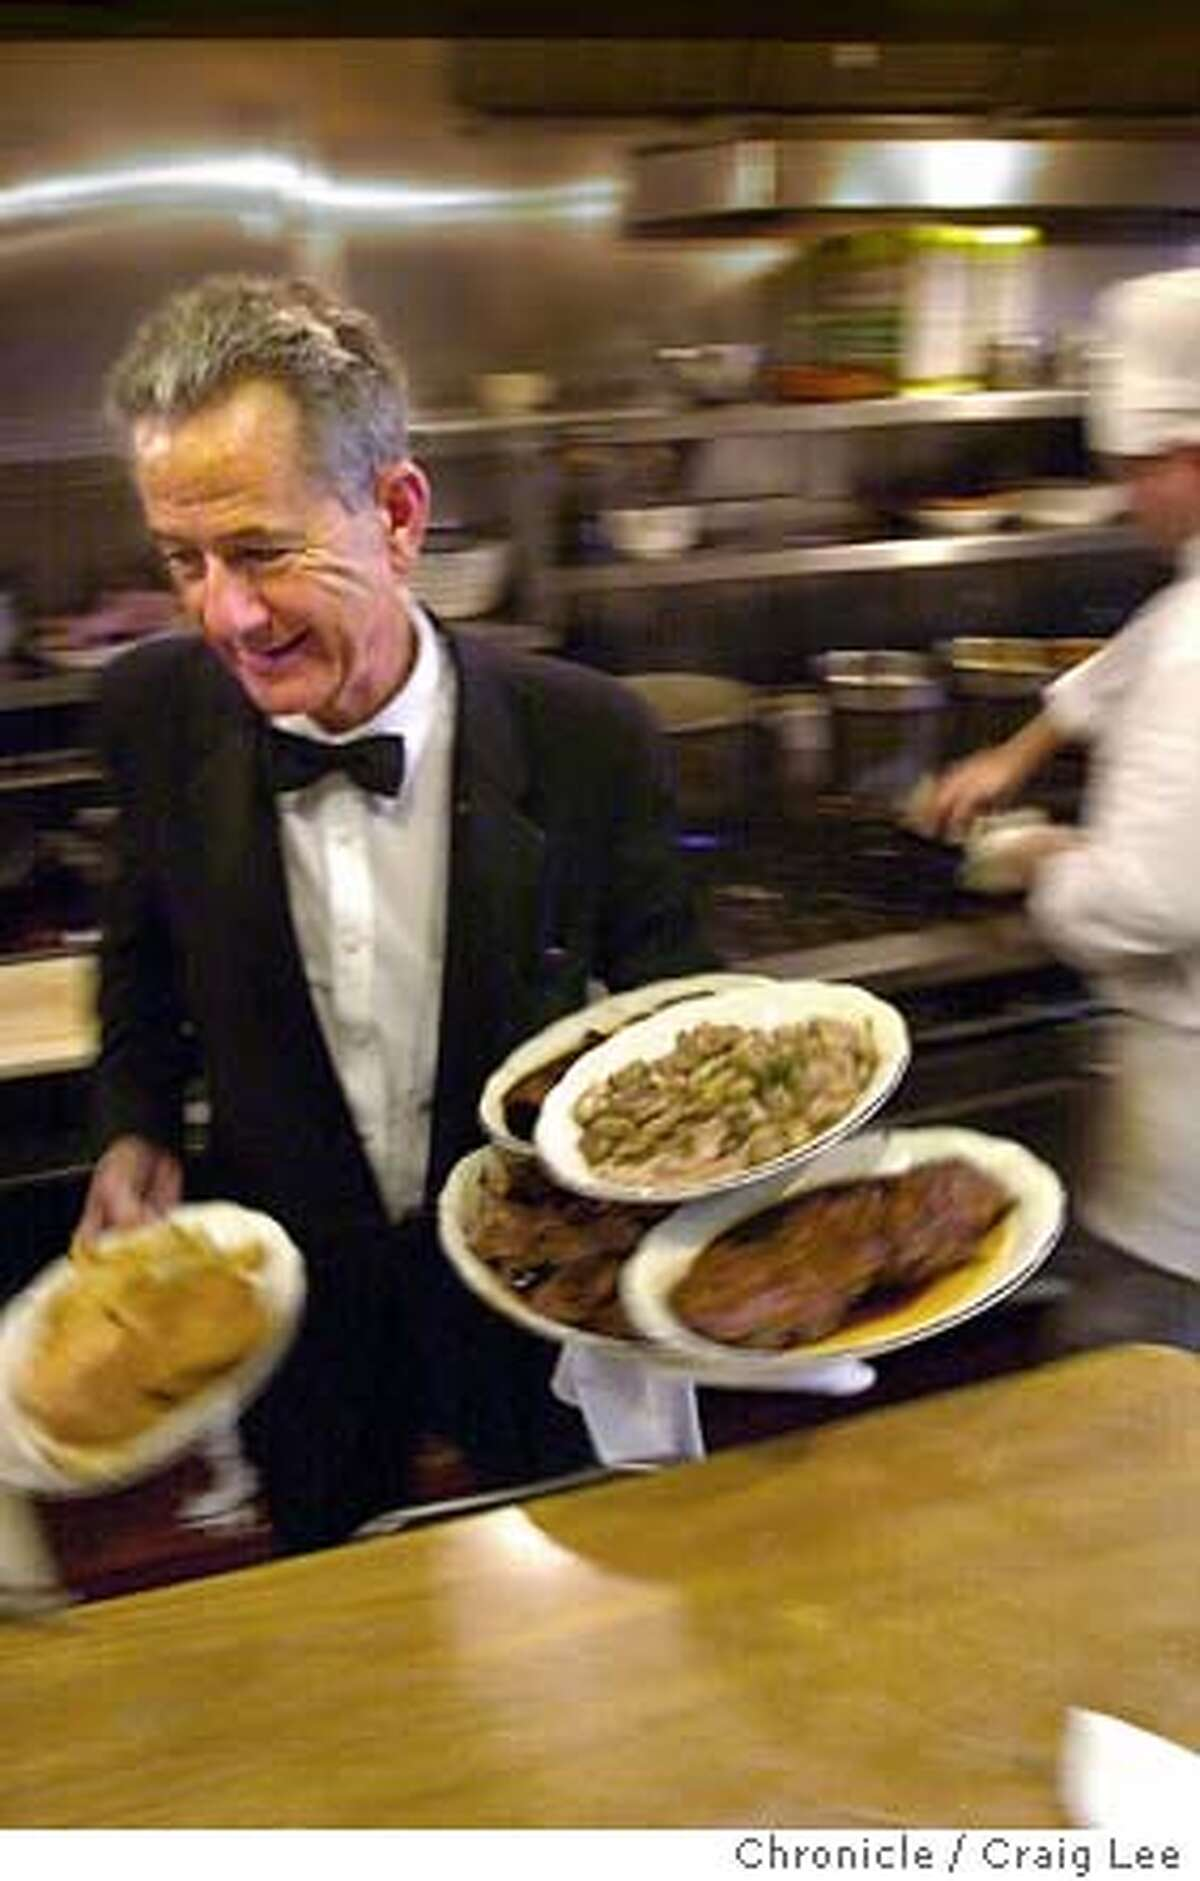 Original Joe's restaurant in the Tenderloin district of San Francisco. Photo of waiter, Angelo Viducic, age 63, hussling out a dinner order from the kitchen. He came to work there in 1960 at the age of 20 and has been there ever since. CRAIG LEE / The Chronicle